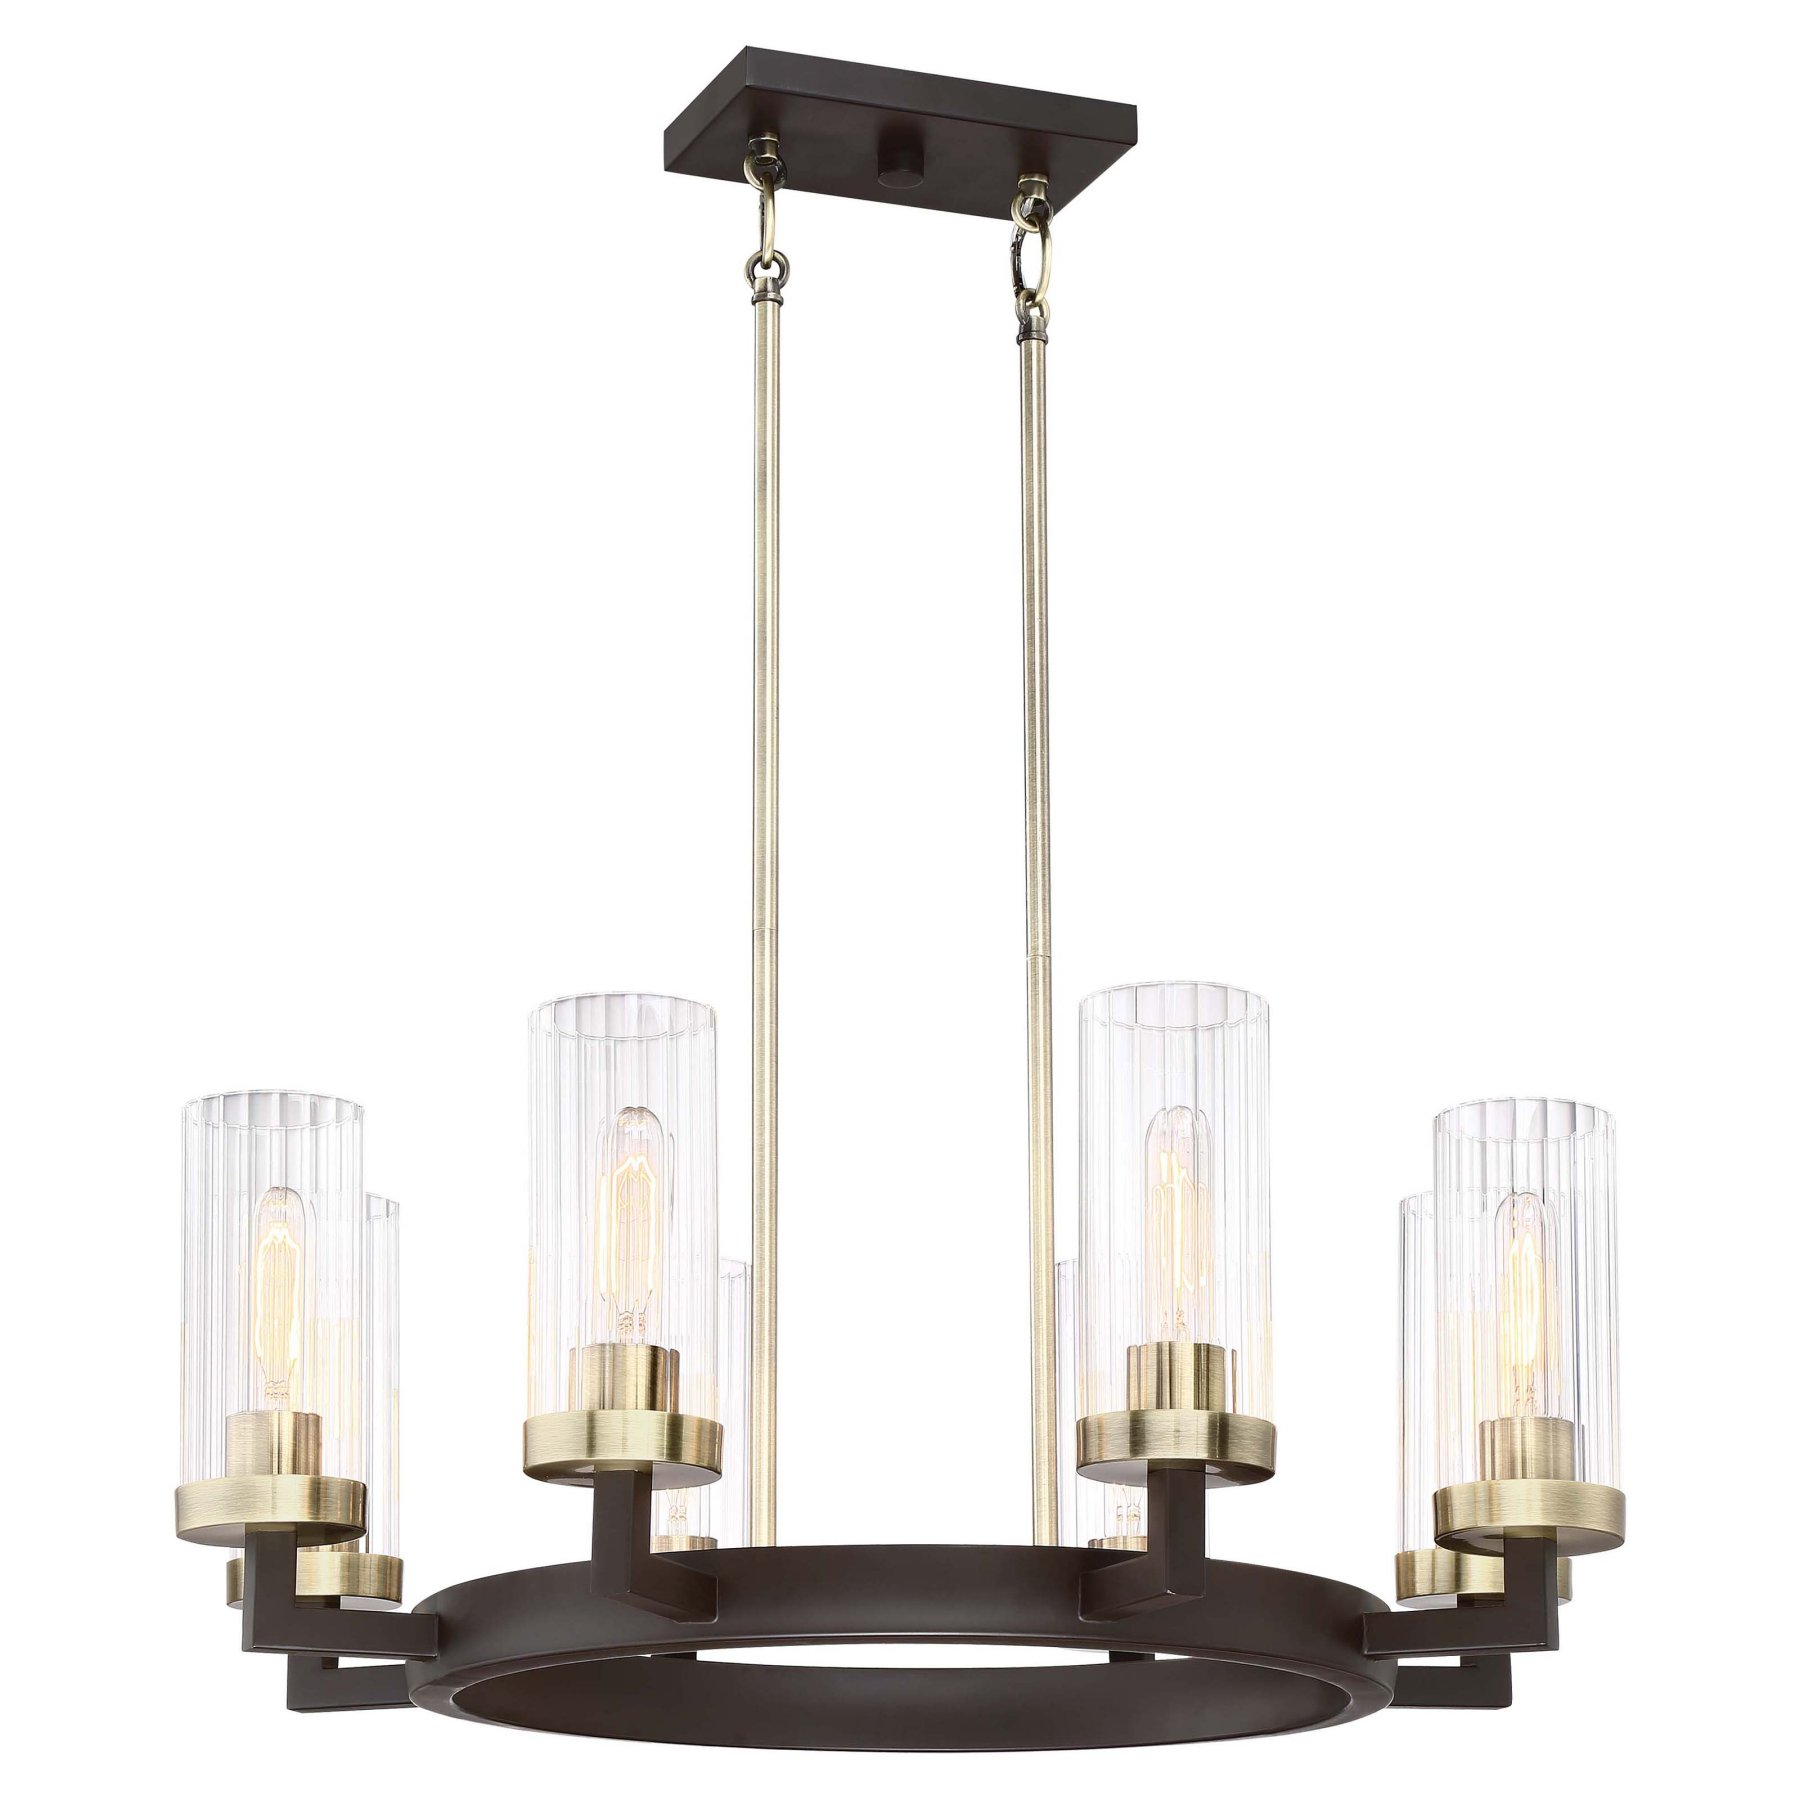 Minka Lavery Ainsley Court 3048 560 Pendant Light  3048 560